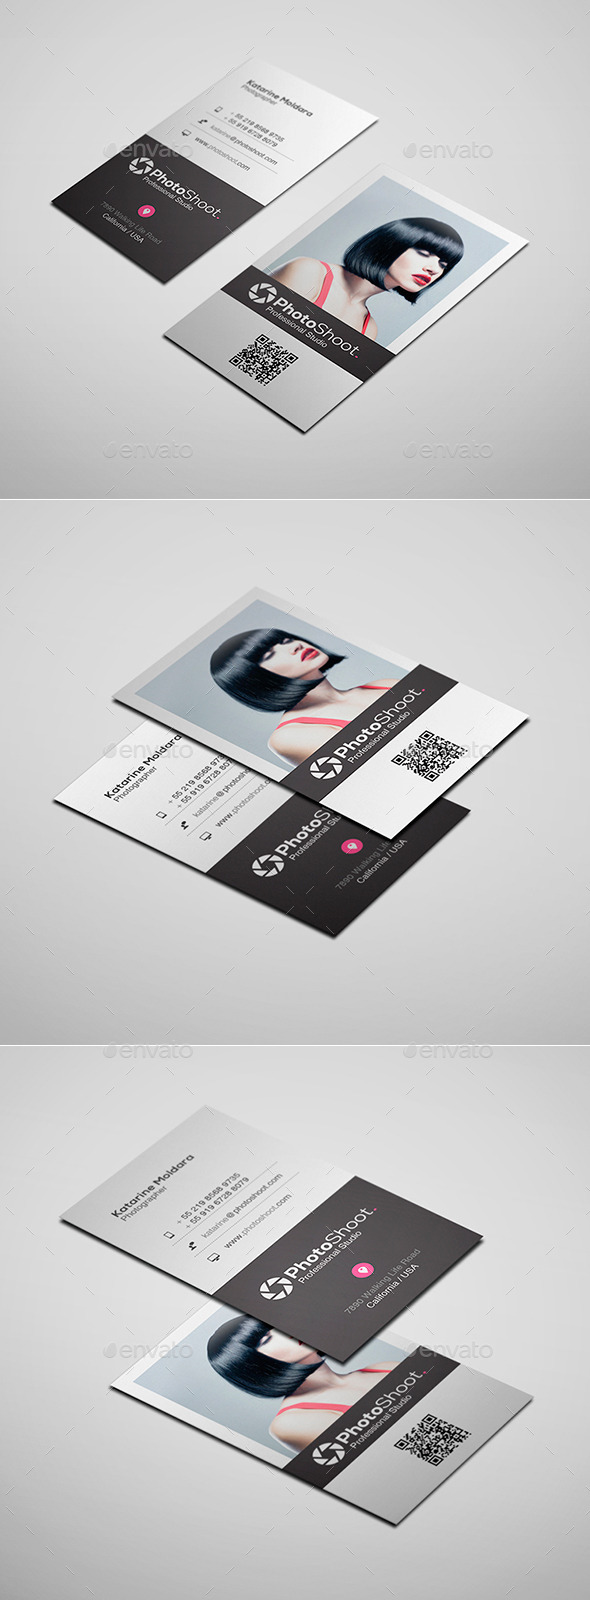 GraphicRiver Business Card Vol 03 11440639